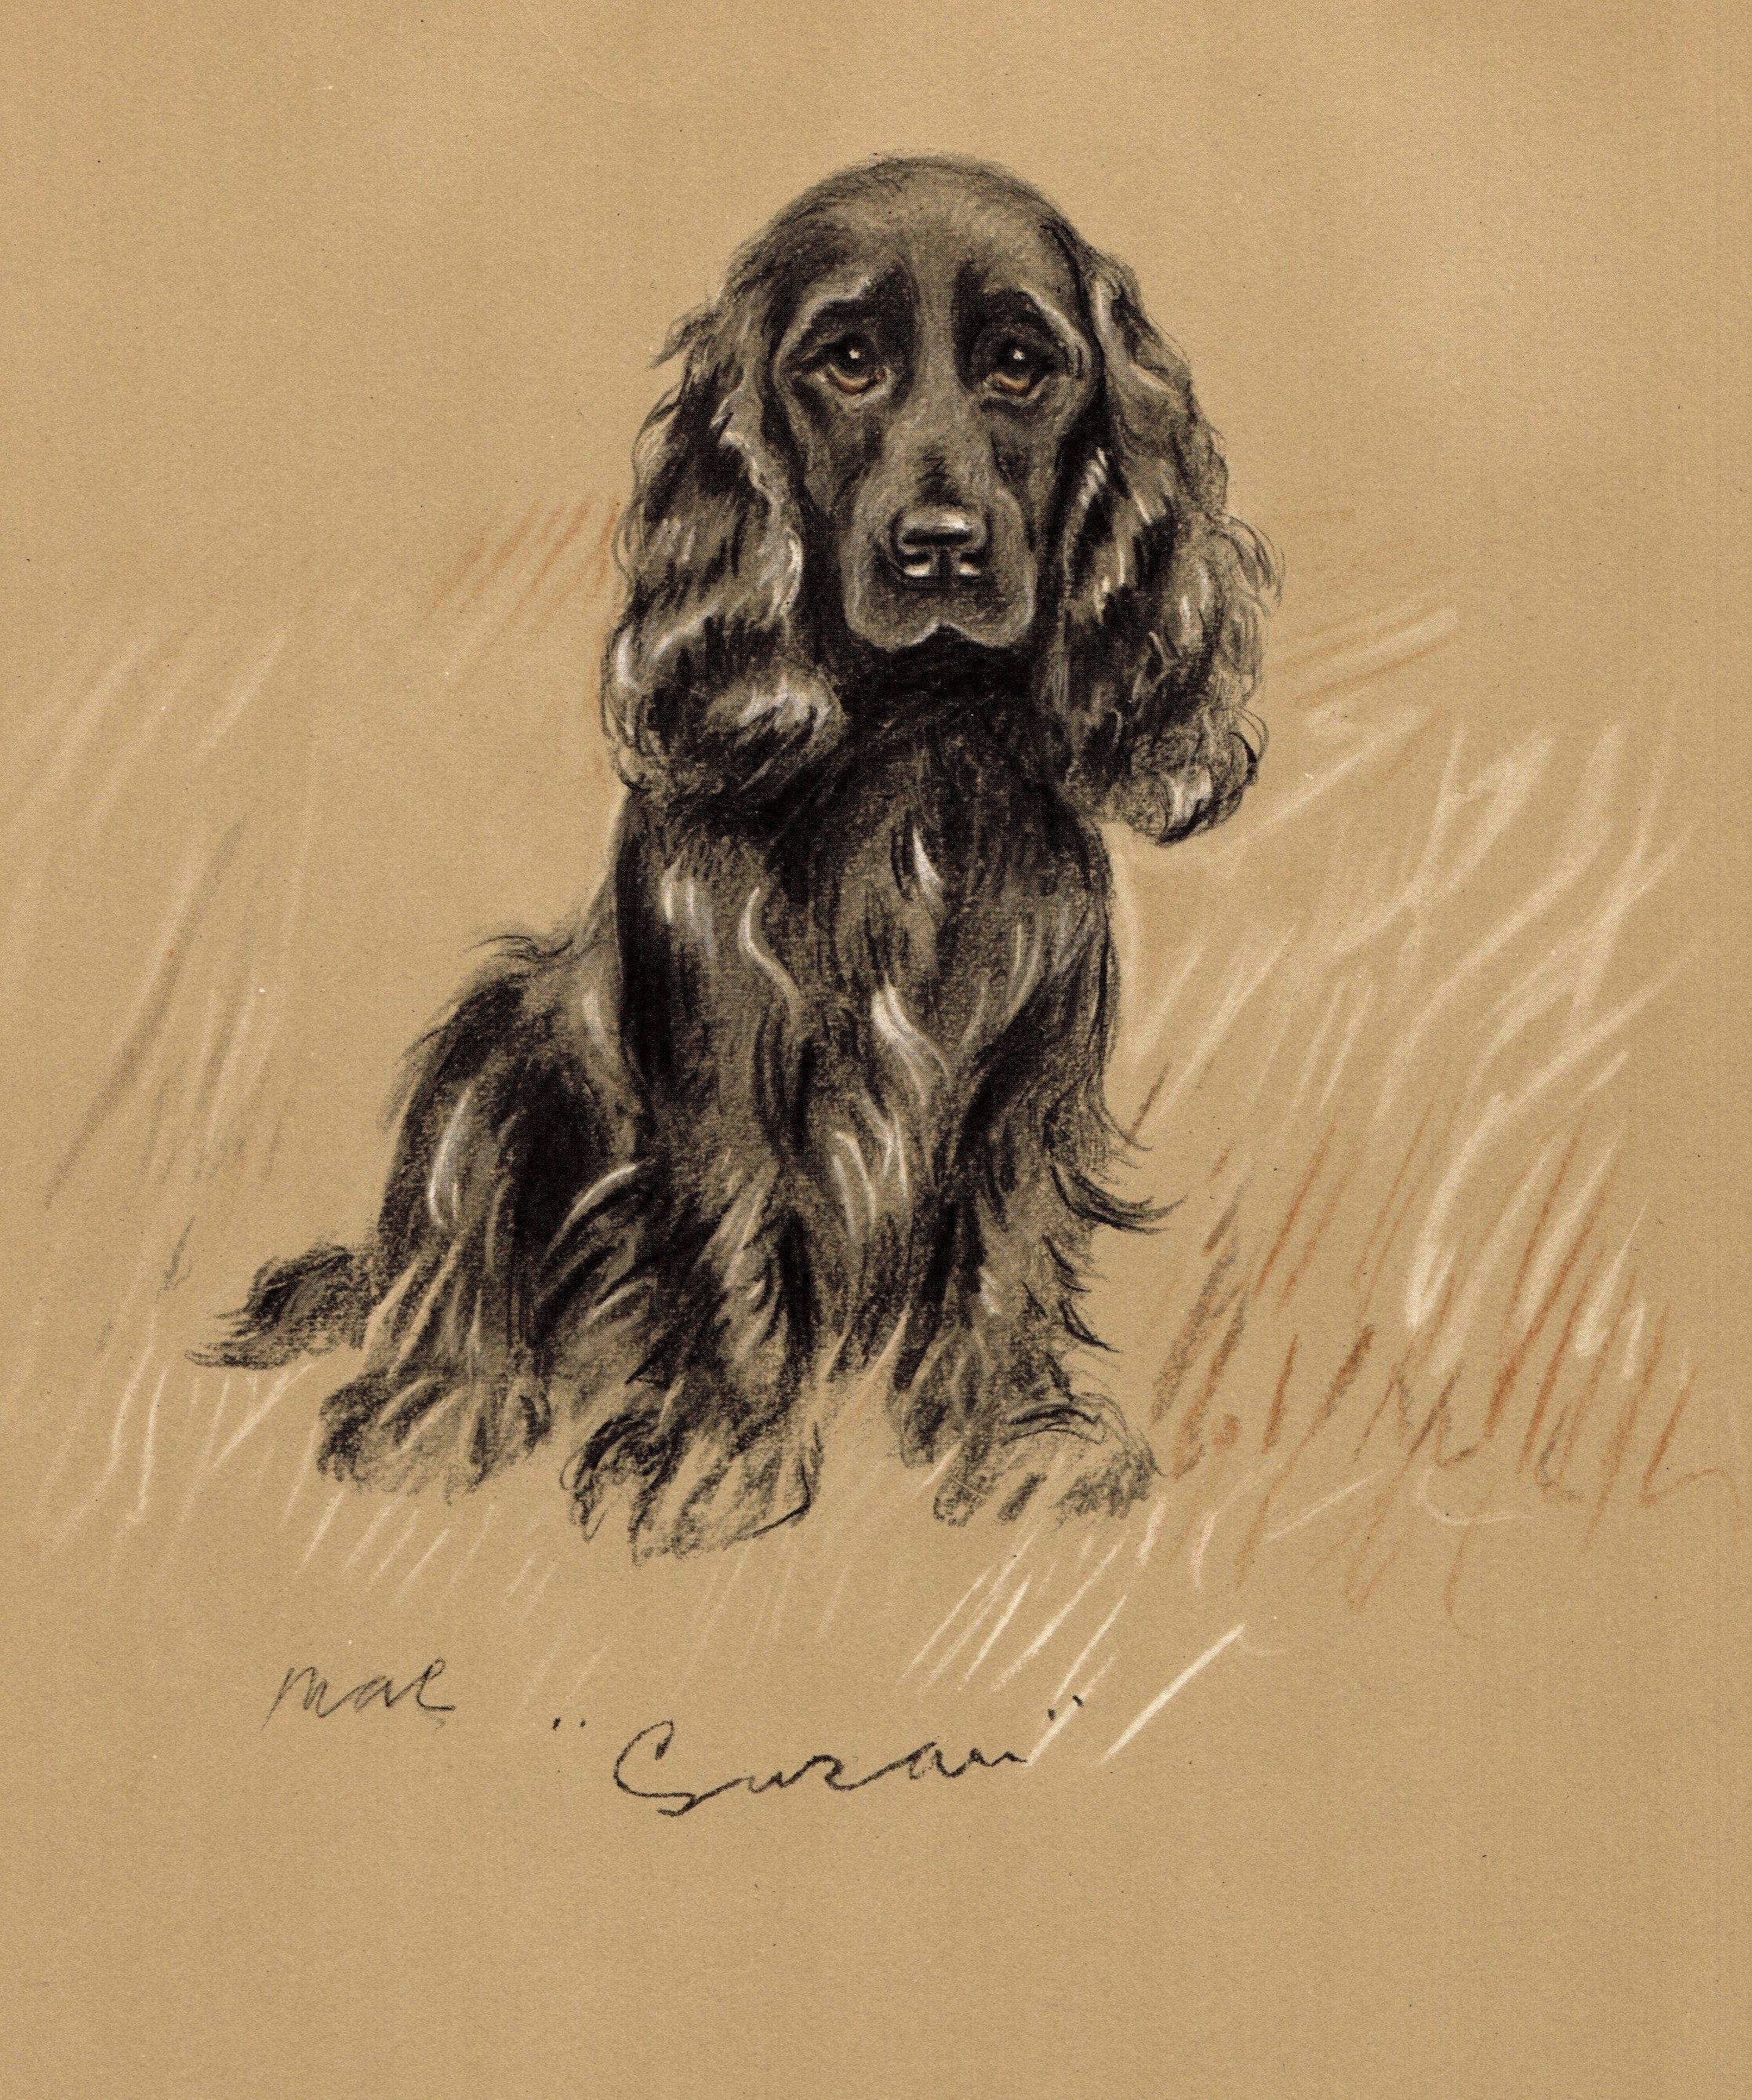 1940 Antique Cocker Spaniel Dog Print Vintage Lucy Dawson Etsy In 2020 Dog Print Art Dog Art Puppy Prints